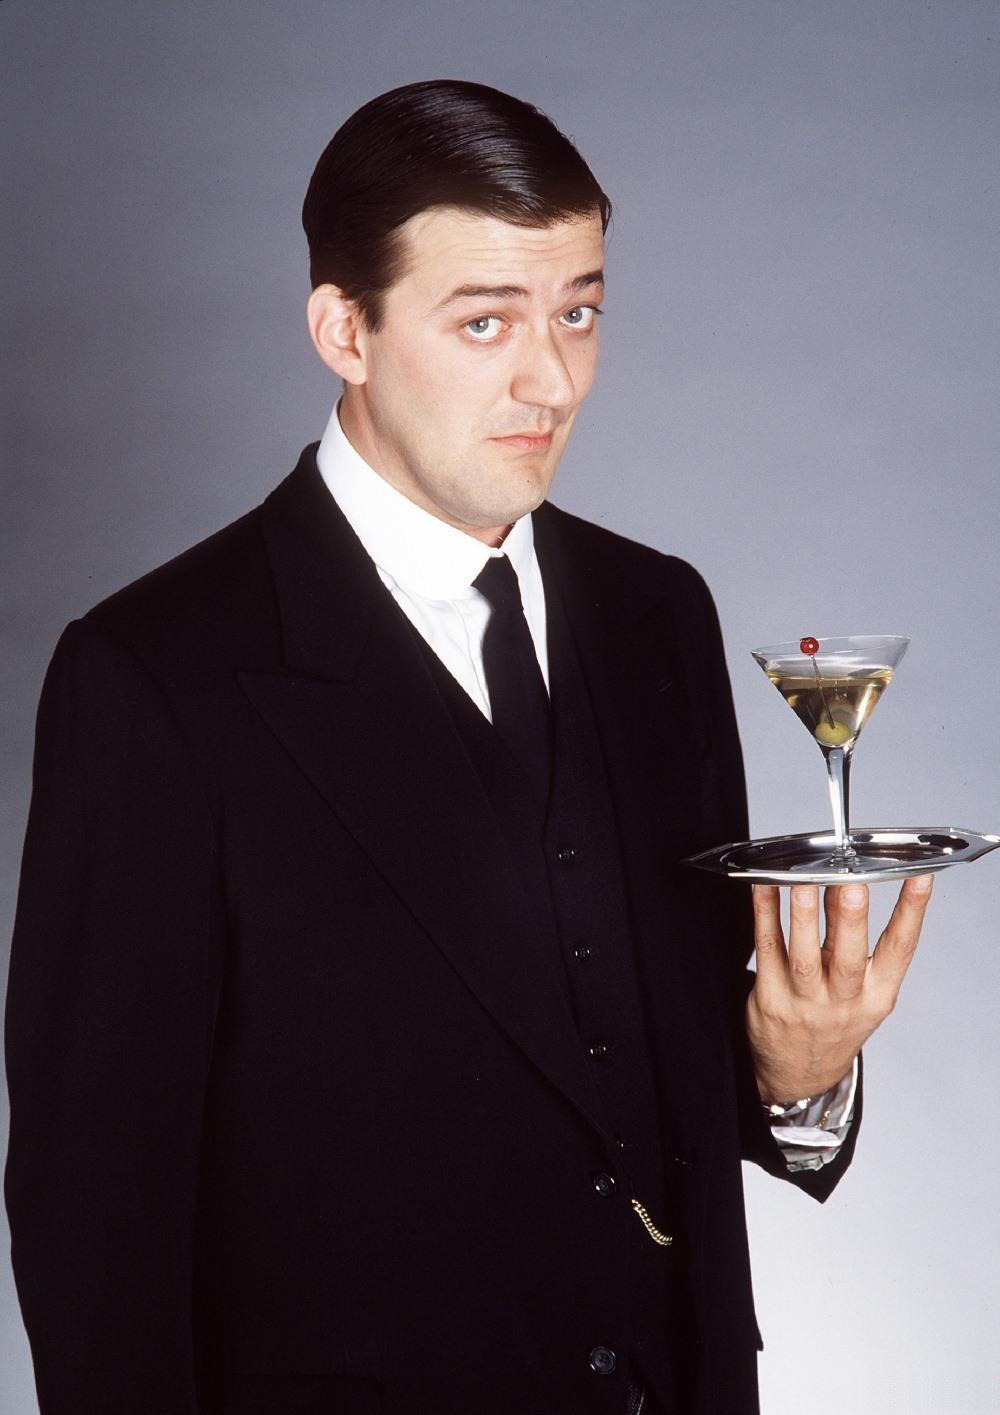 Reginald Jeeves